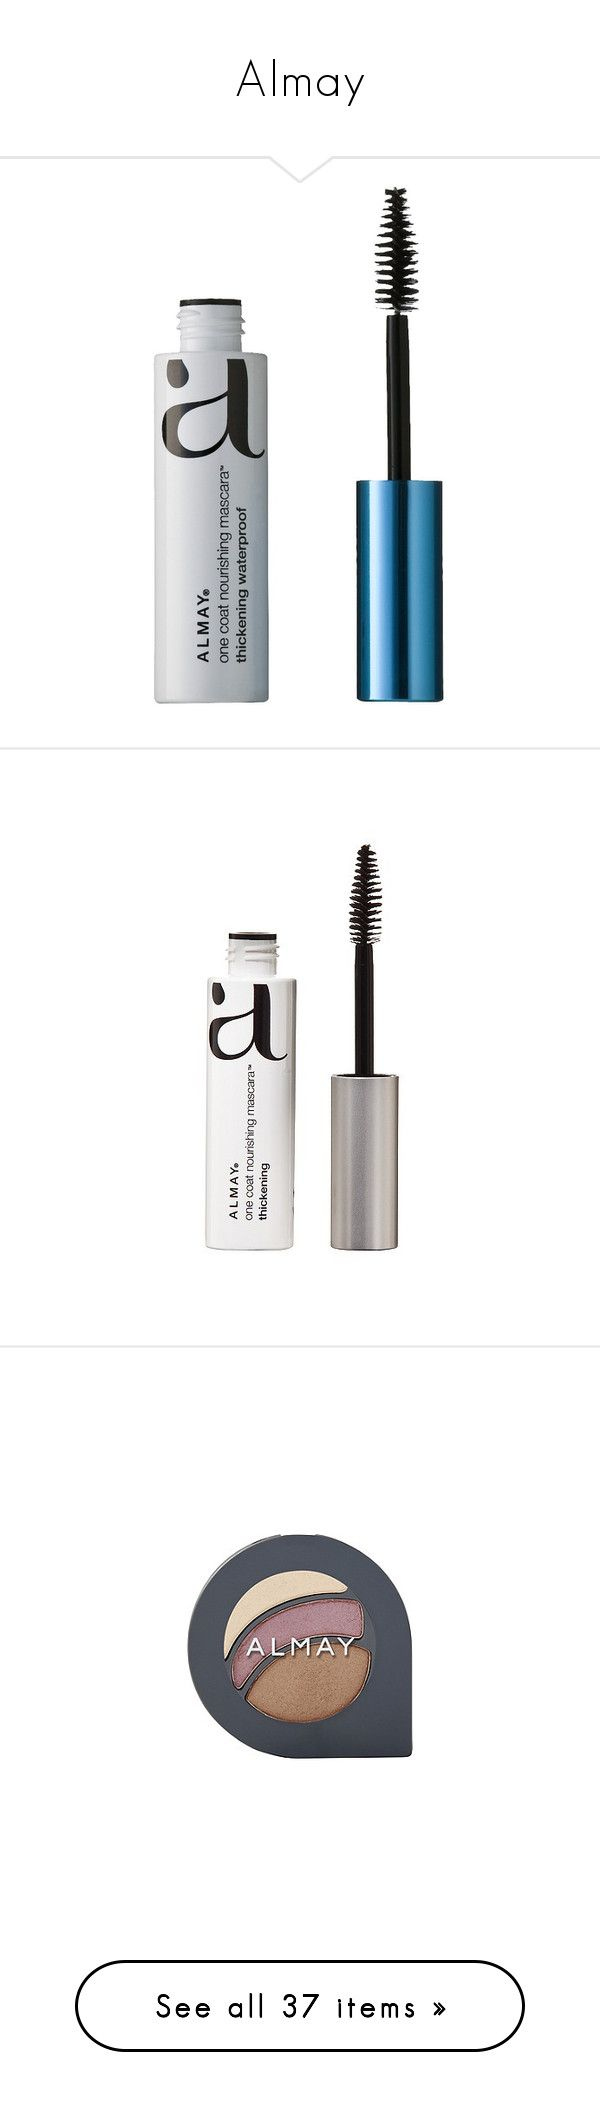 """Almay"" by shoppings9 ❤ liked on Polyvore featuring beauty products, makeup, eye makeup, mascara, waterproof black, almay mascara, almay eye makeup, conditioning mascara, almay and thickening mascara"